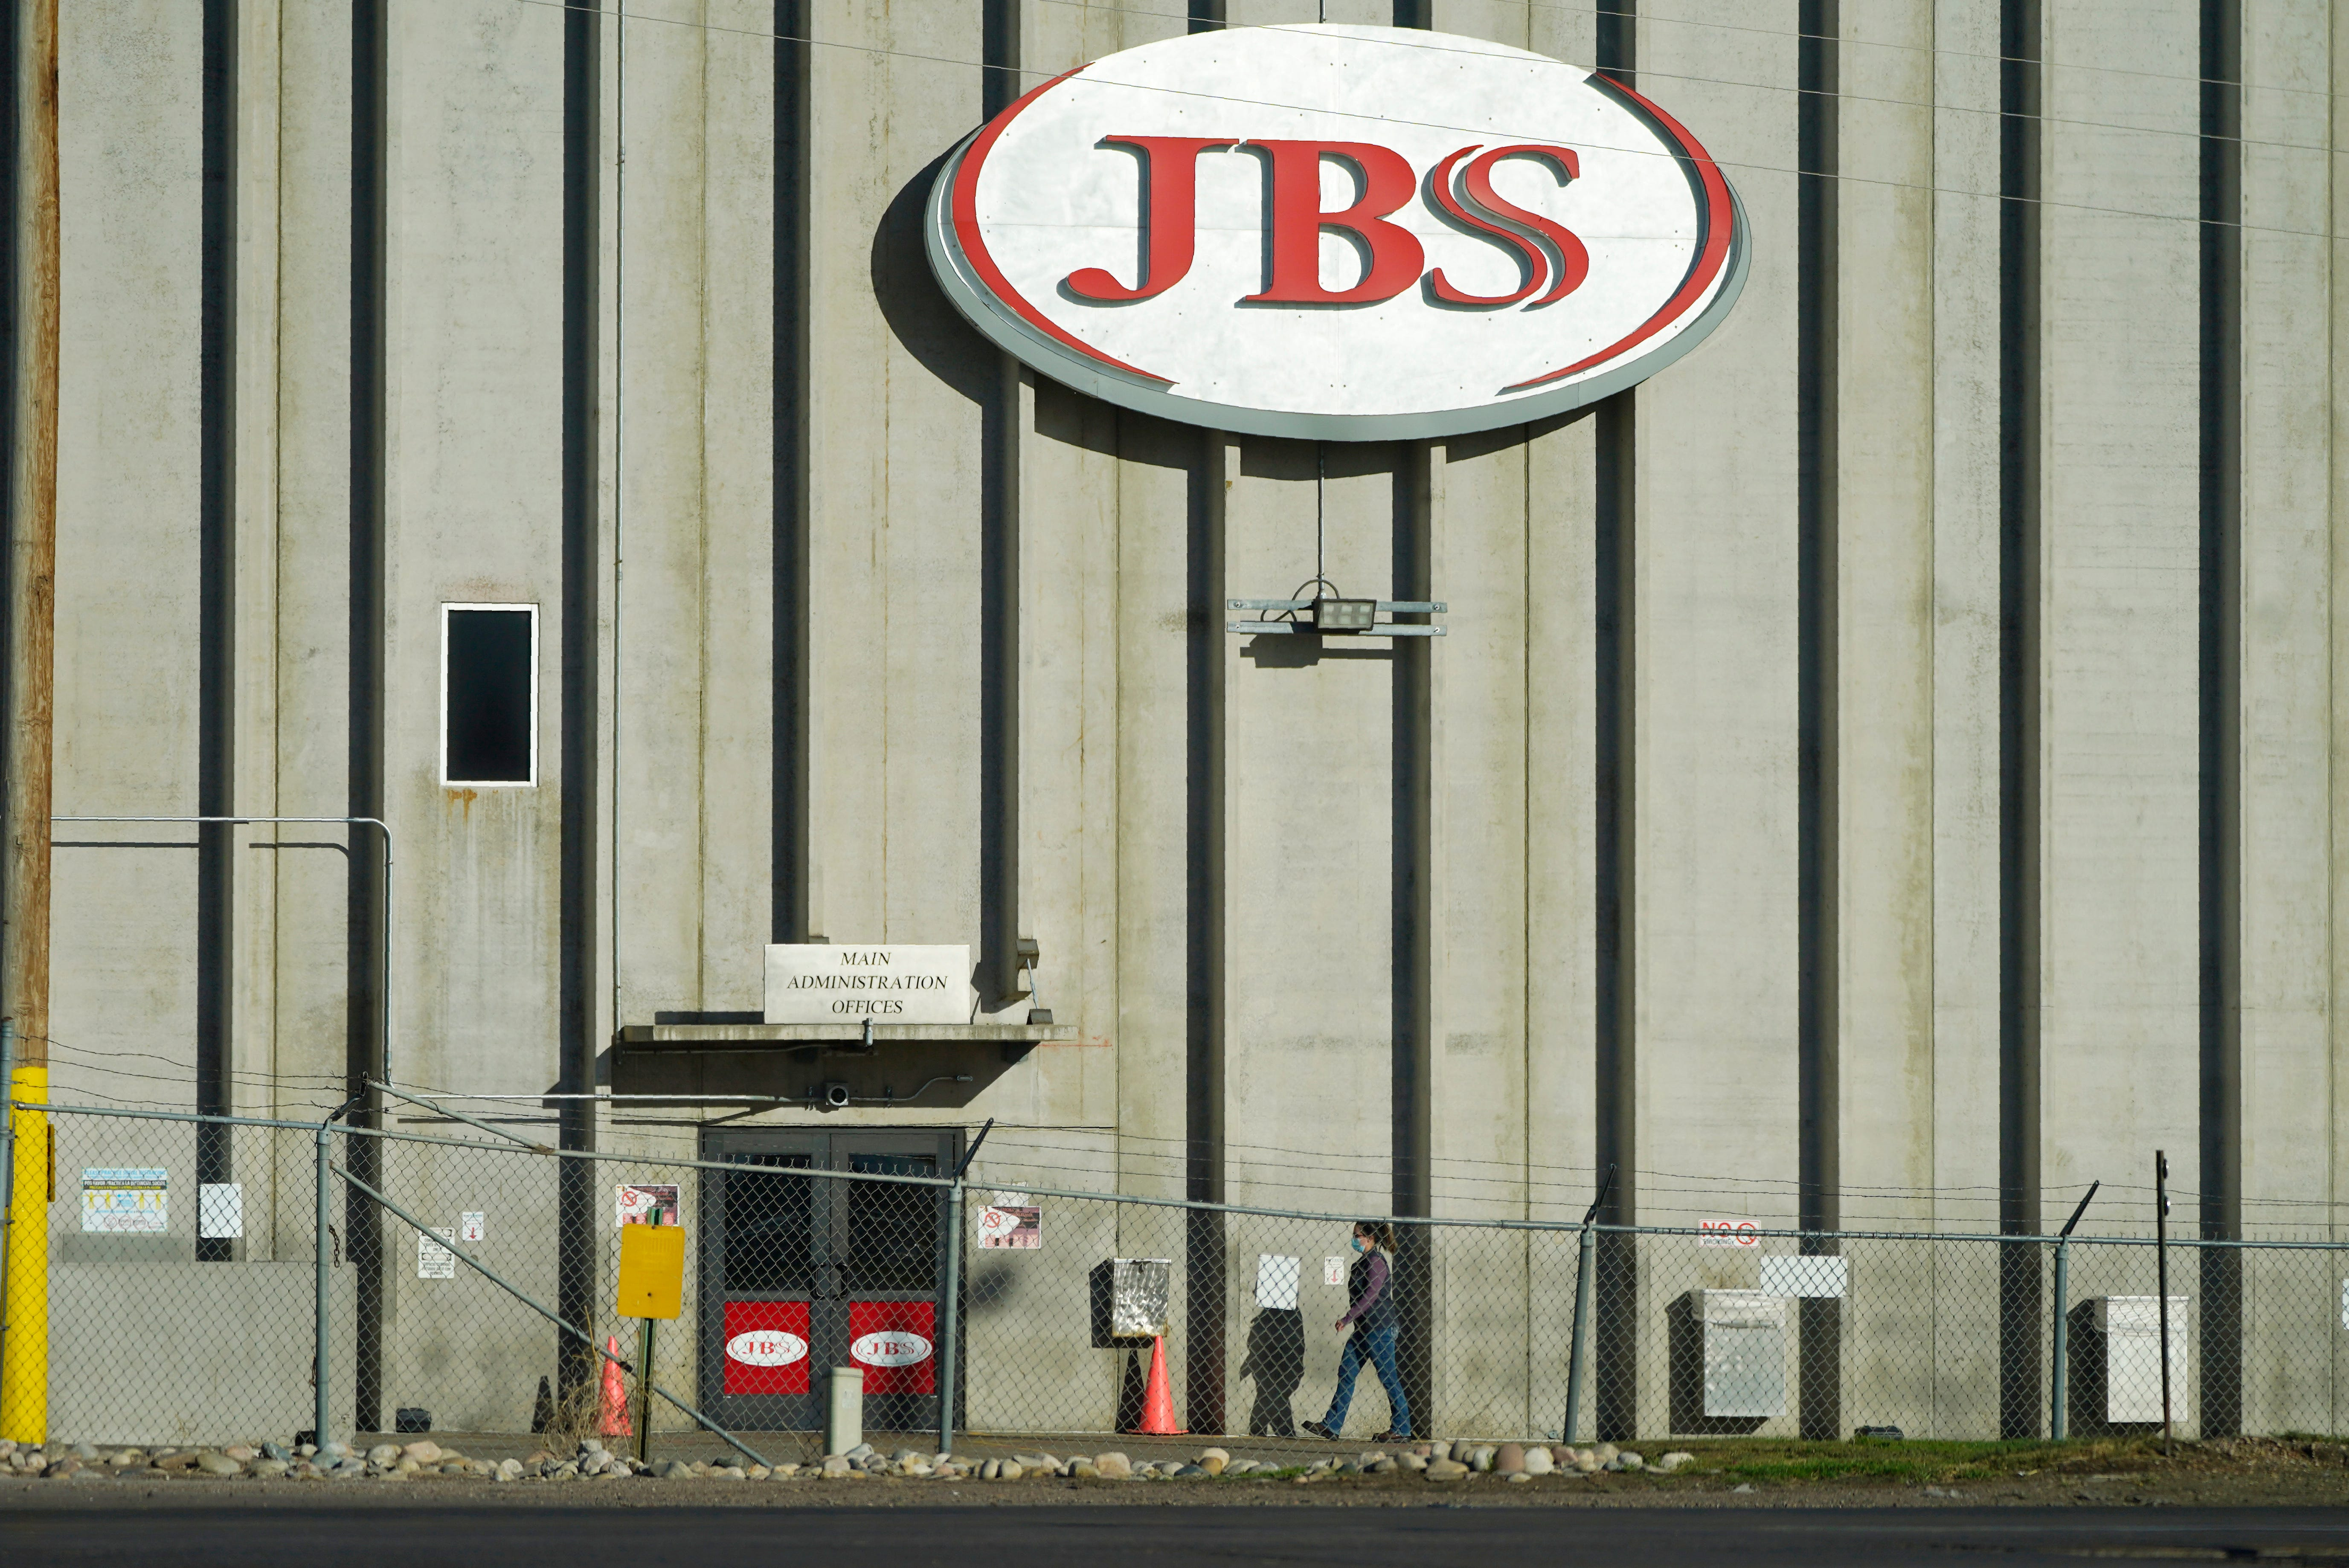 Meat company JBS confirms it paid $11M ransom in cyberattack 2